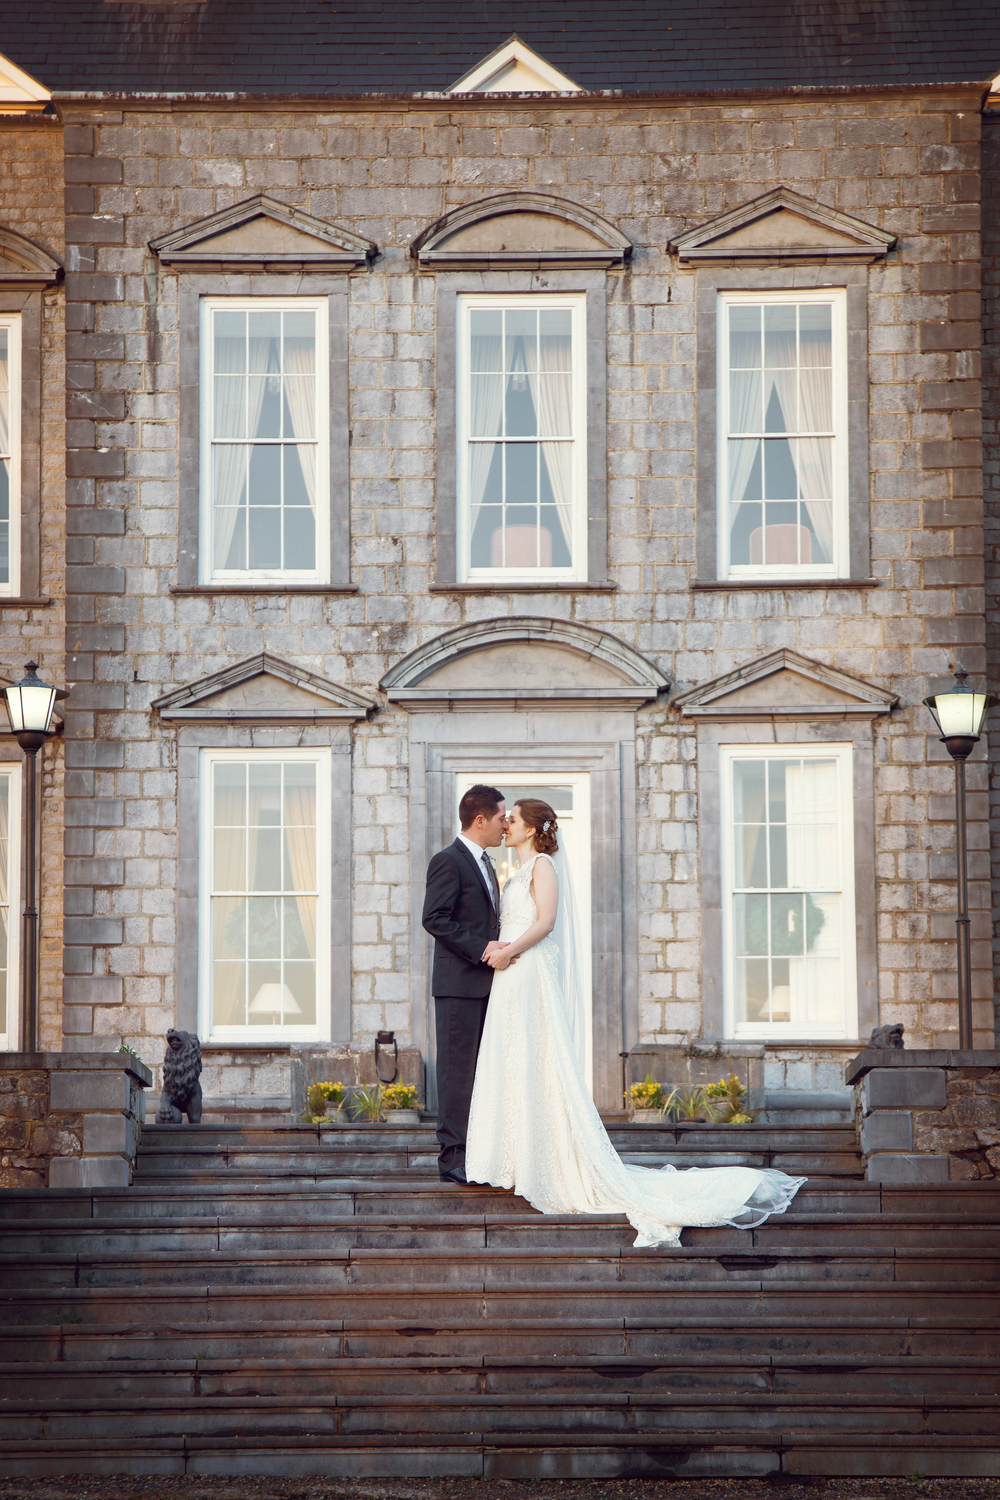 Wedding Photography Ireland Castle Durrow Laois Irish Wedding Photographer 106.jpg